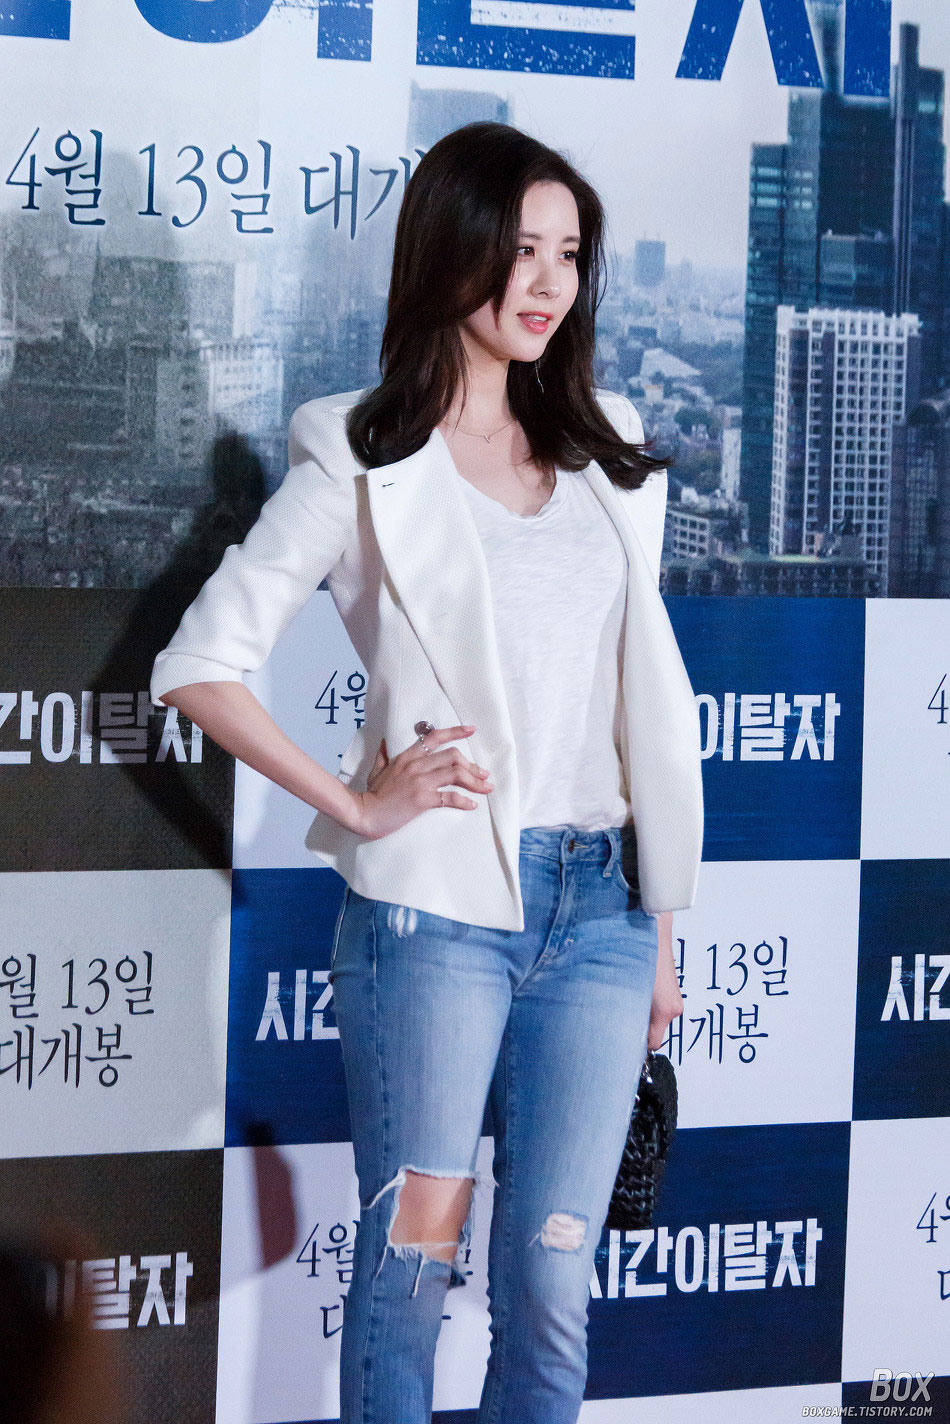 Seo Joo Hyun Time Renegades movie premiere